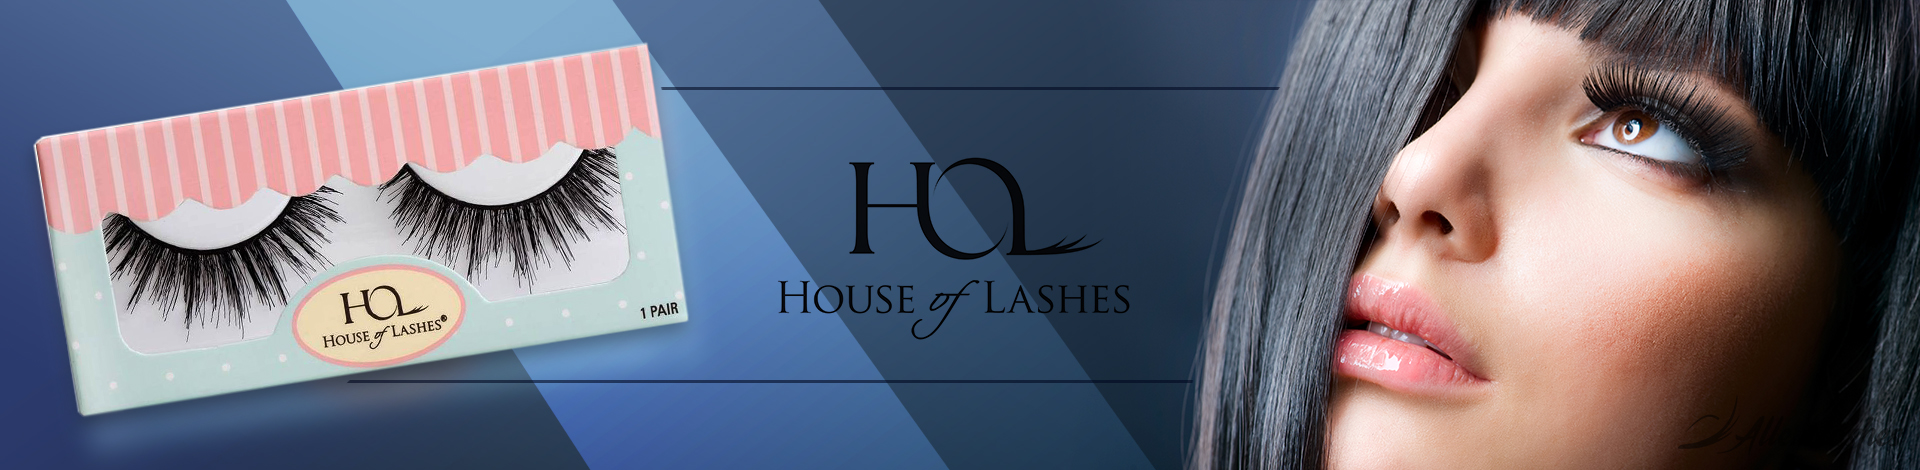 House of Lashes: All About This Stunning Brand